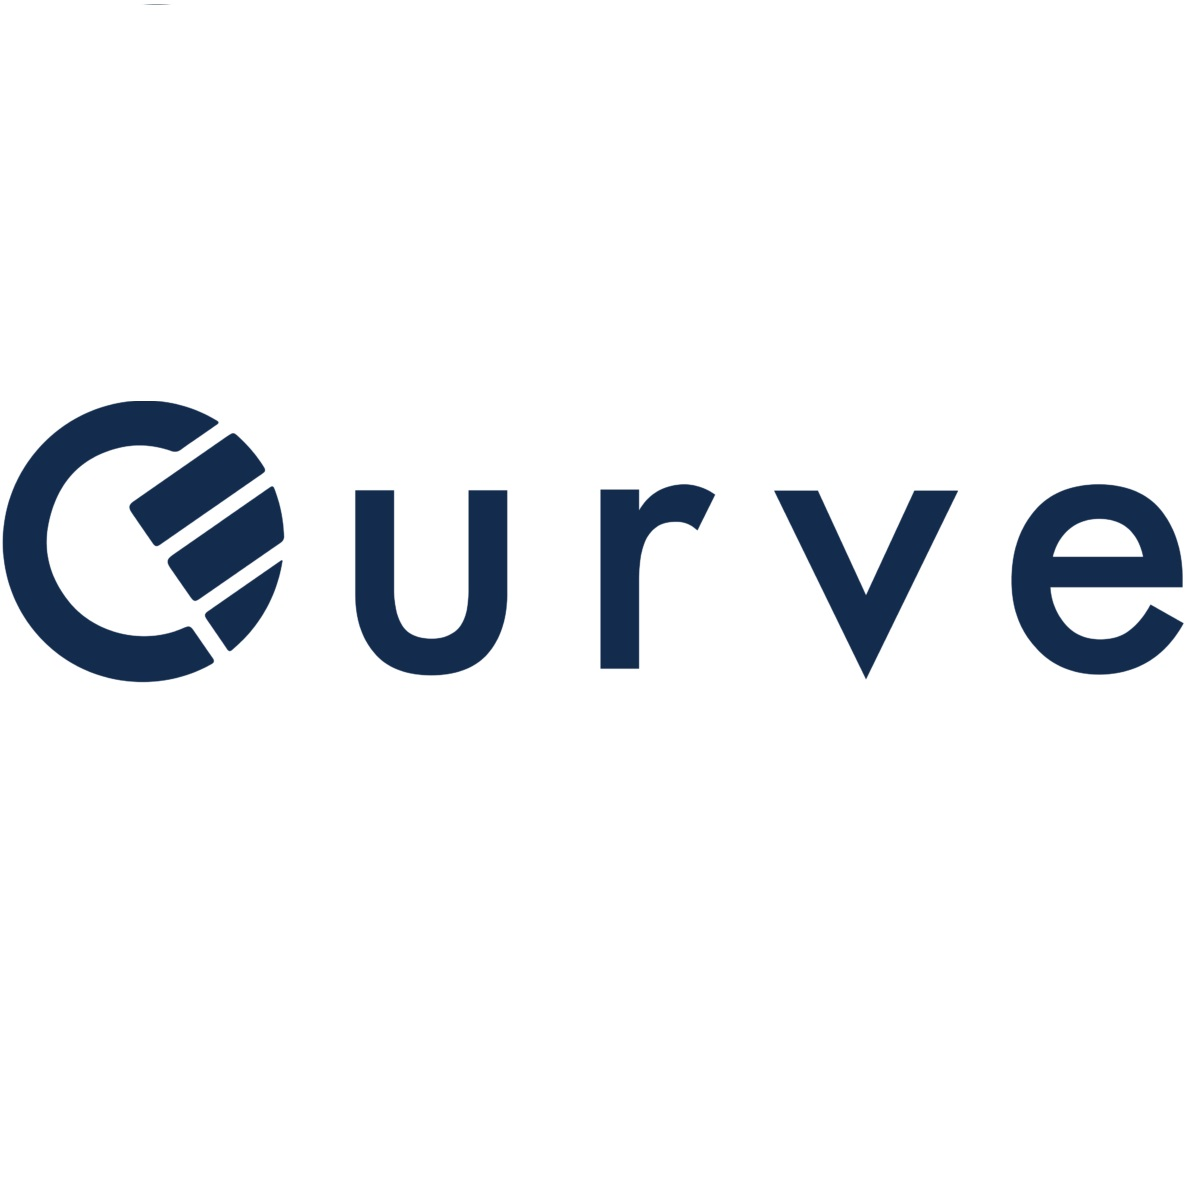 Rachel Adelman, Head of Customer Experience at Curve